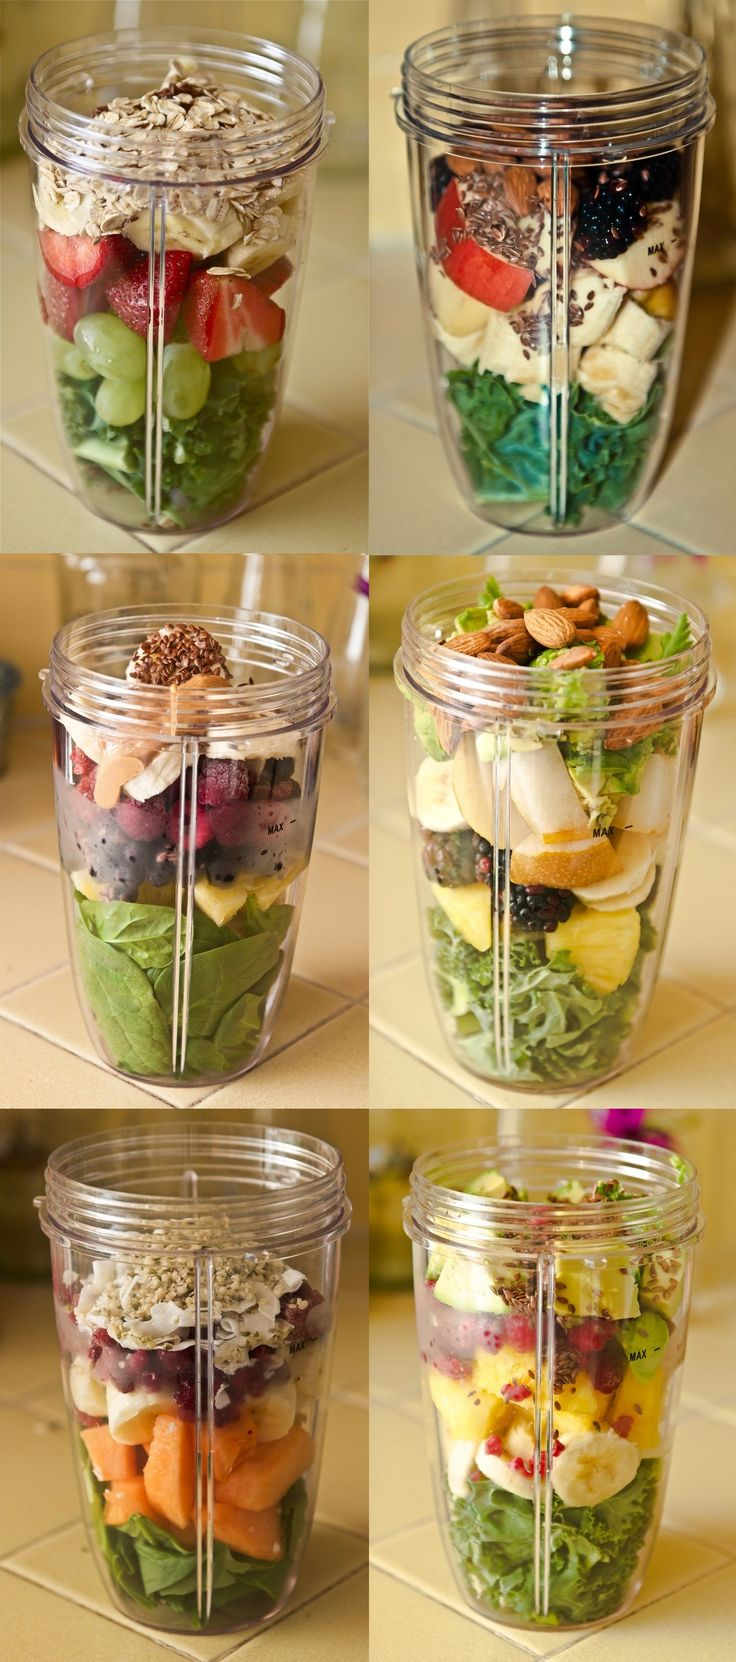 Easy recipes for healthy smoothies https://twitter.com/NeilVenketramen